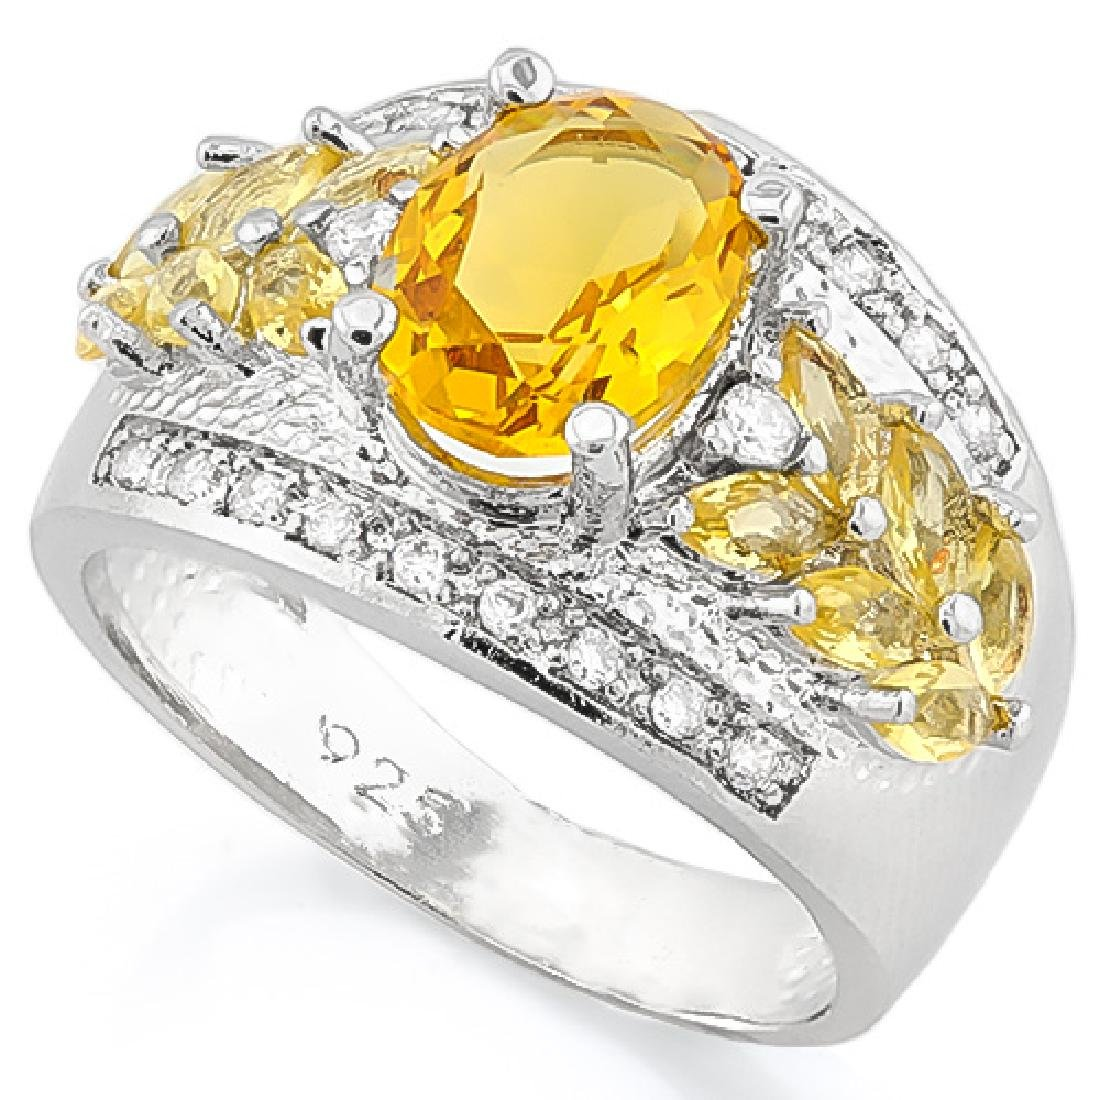 CREATED CITRINE 925 STERLING SILVER RING